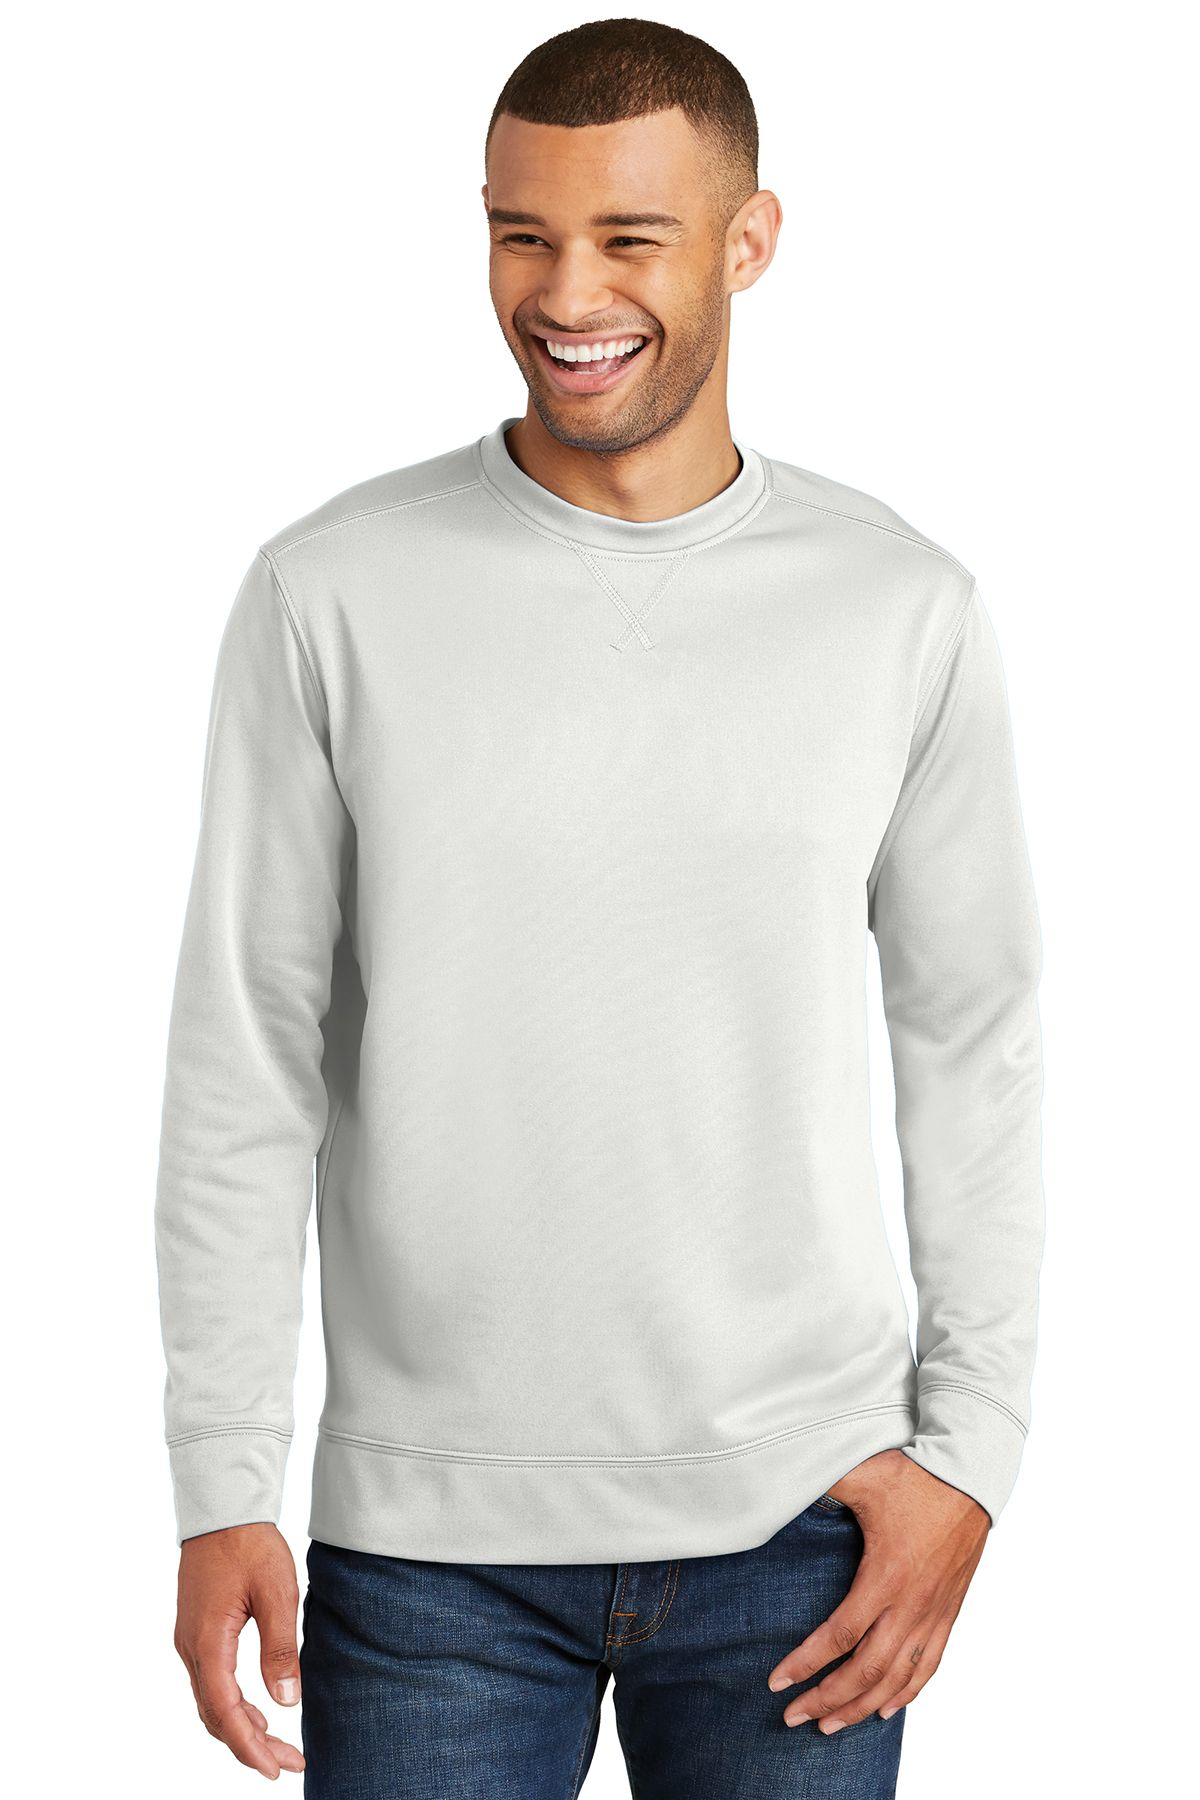 03b7a21bf5 Stay cool and comfortable while active in Port   Company PC590 -  Performance Fleece Crewneck Sweatshirt. Made with 100% polyester